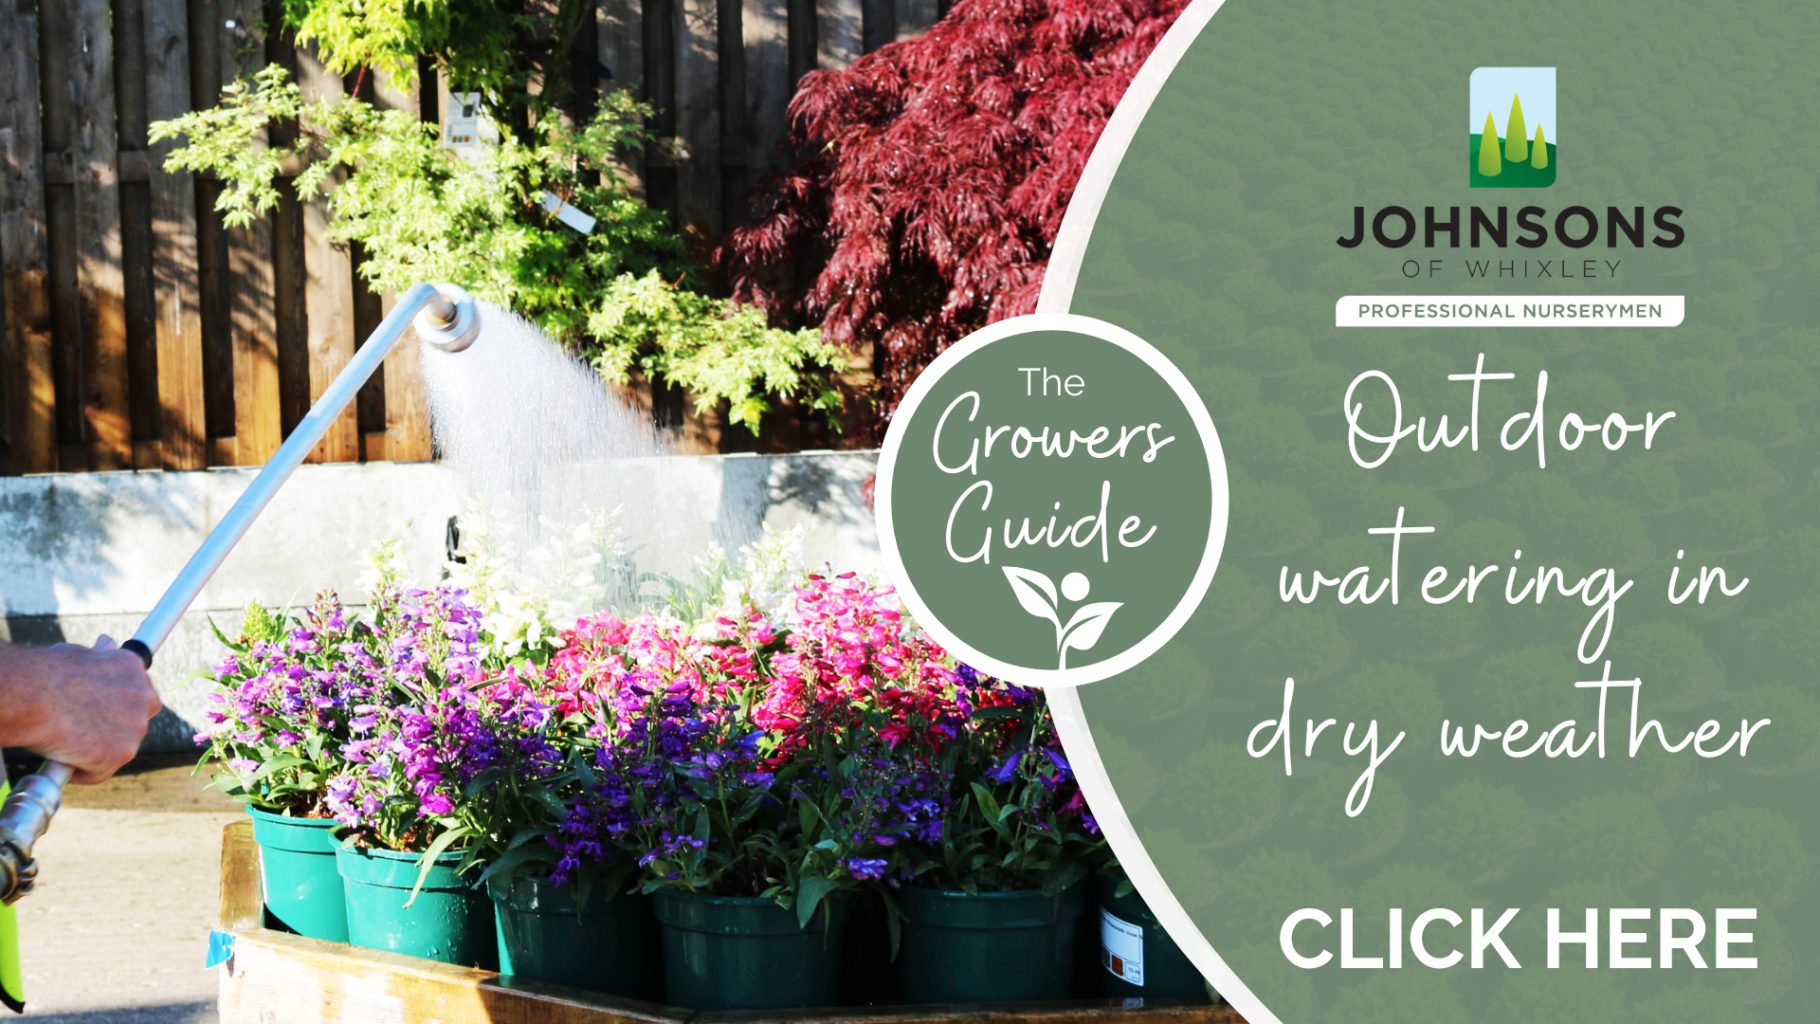 The Growers Guide - Watering in dry weather